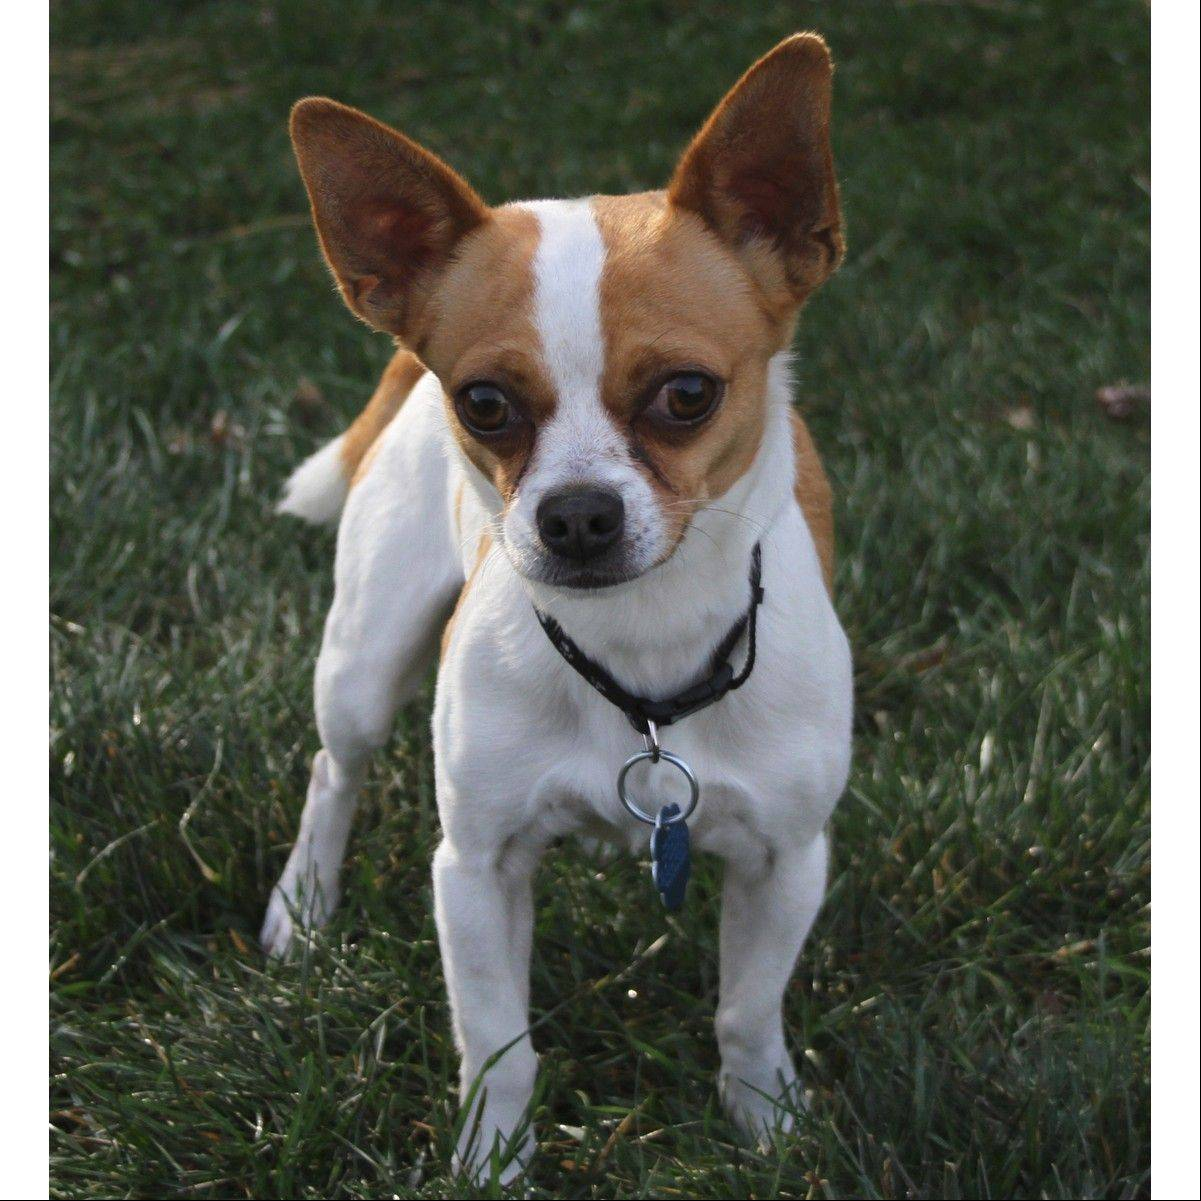 Izzy, a male, 3-year-old Chihuahua, weighs about eight pounds.